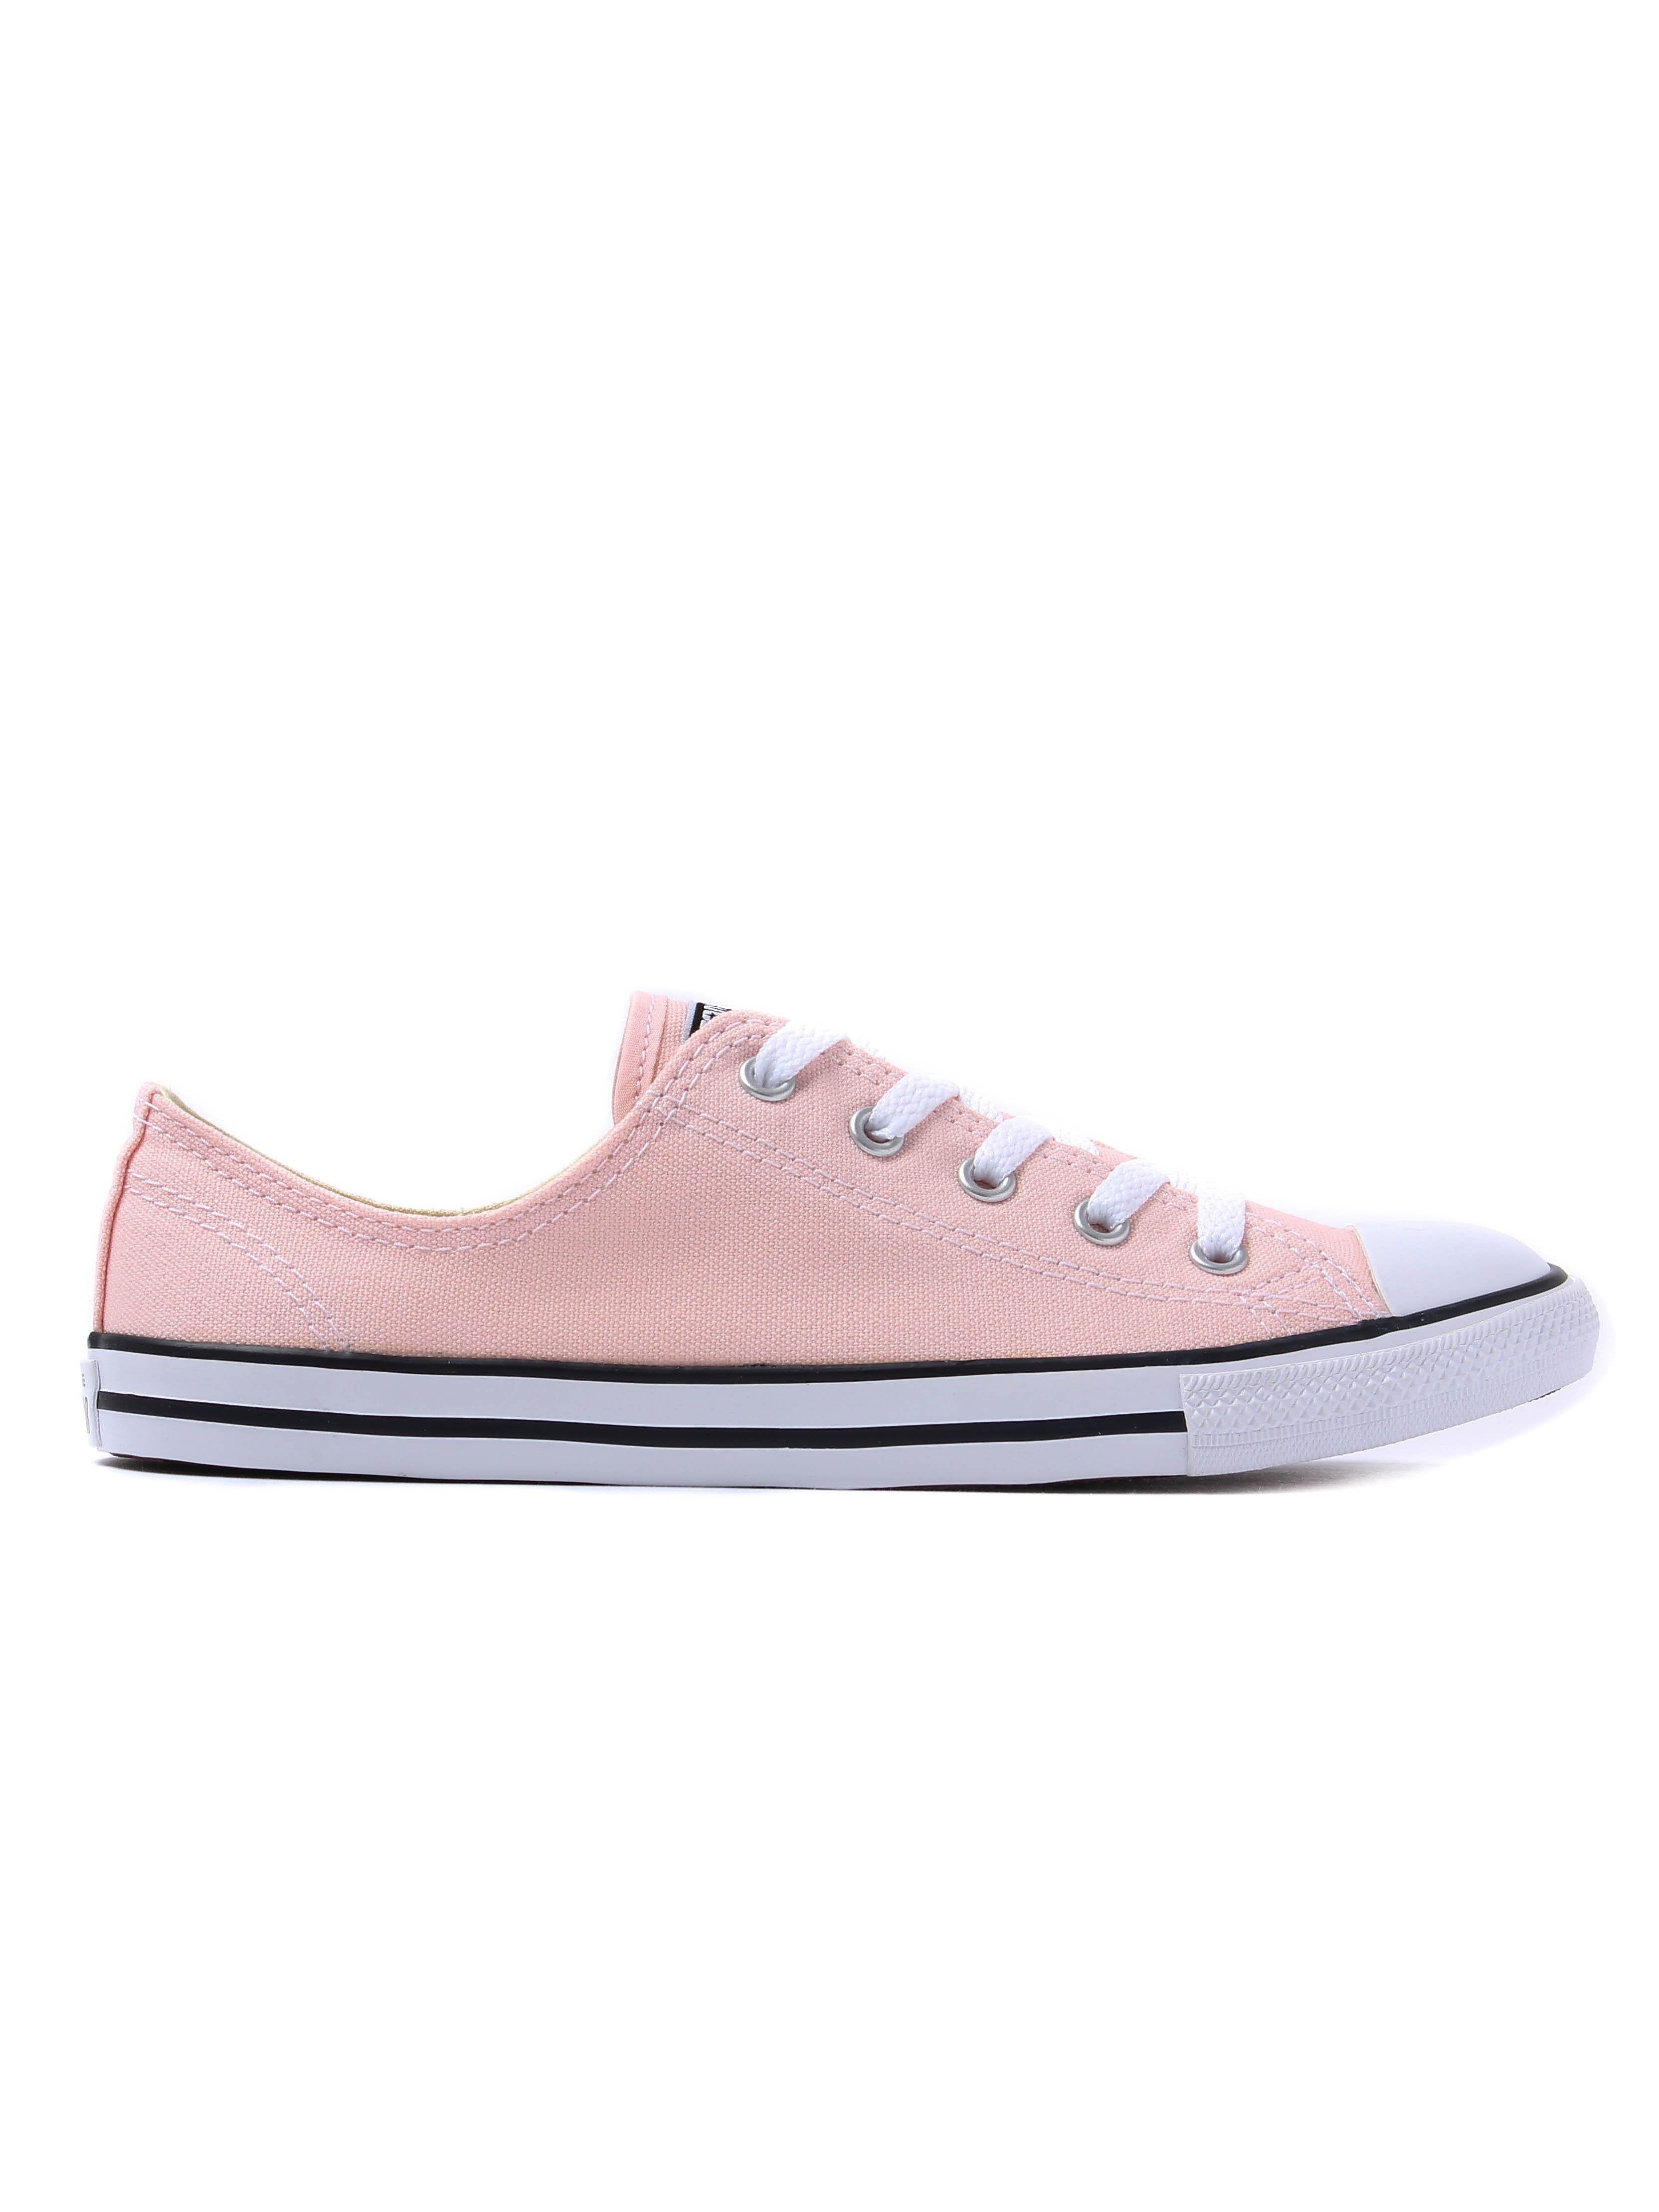 Converse Women's Chuck Taylor All Star Dainty Trainers - Vapor Pink